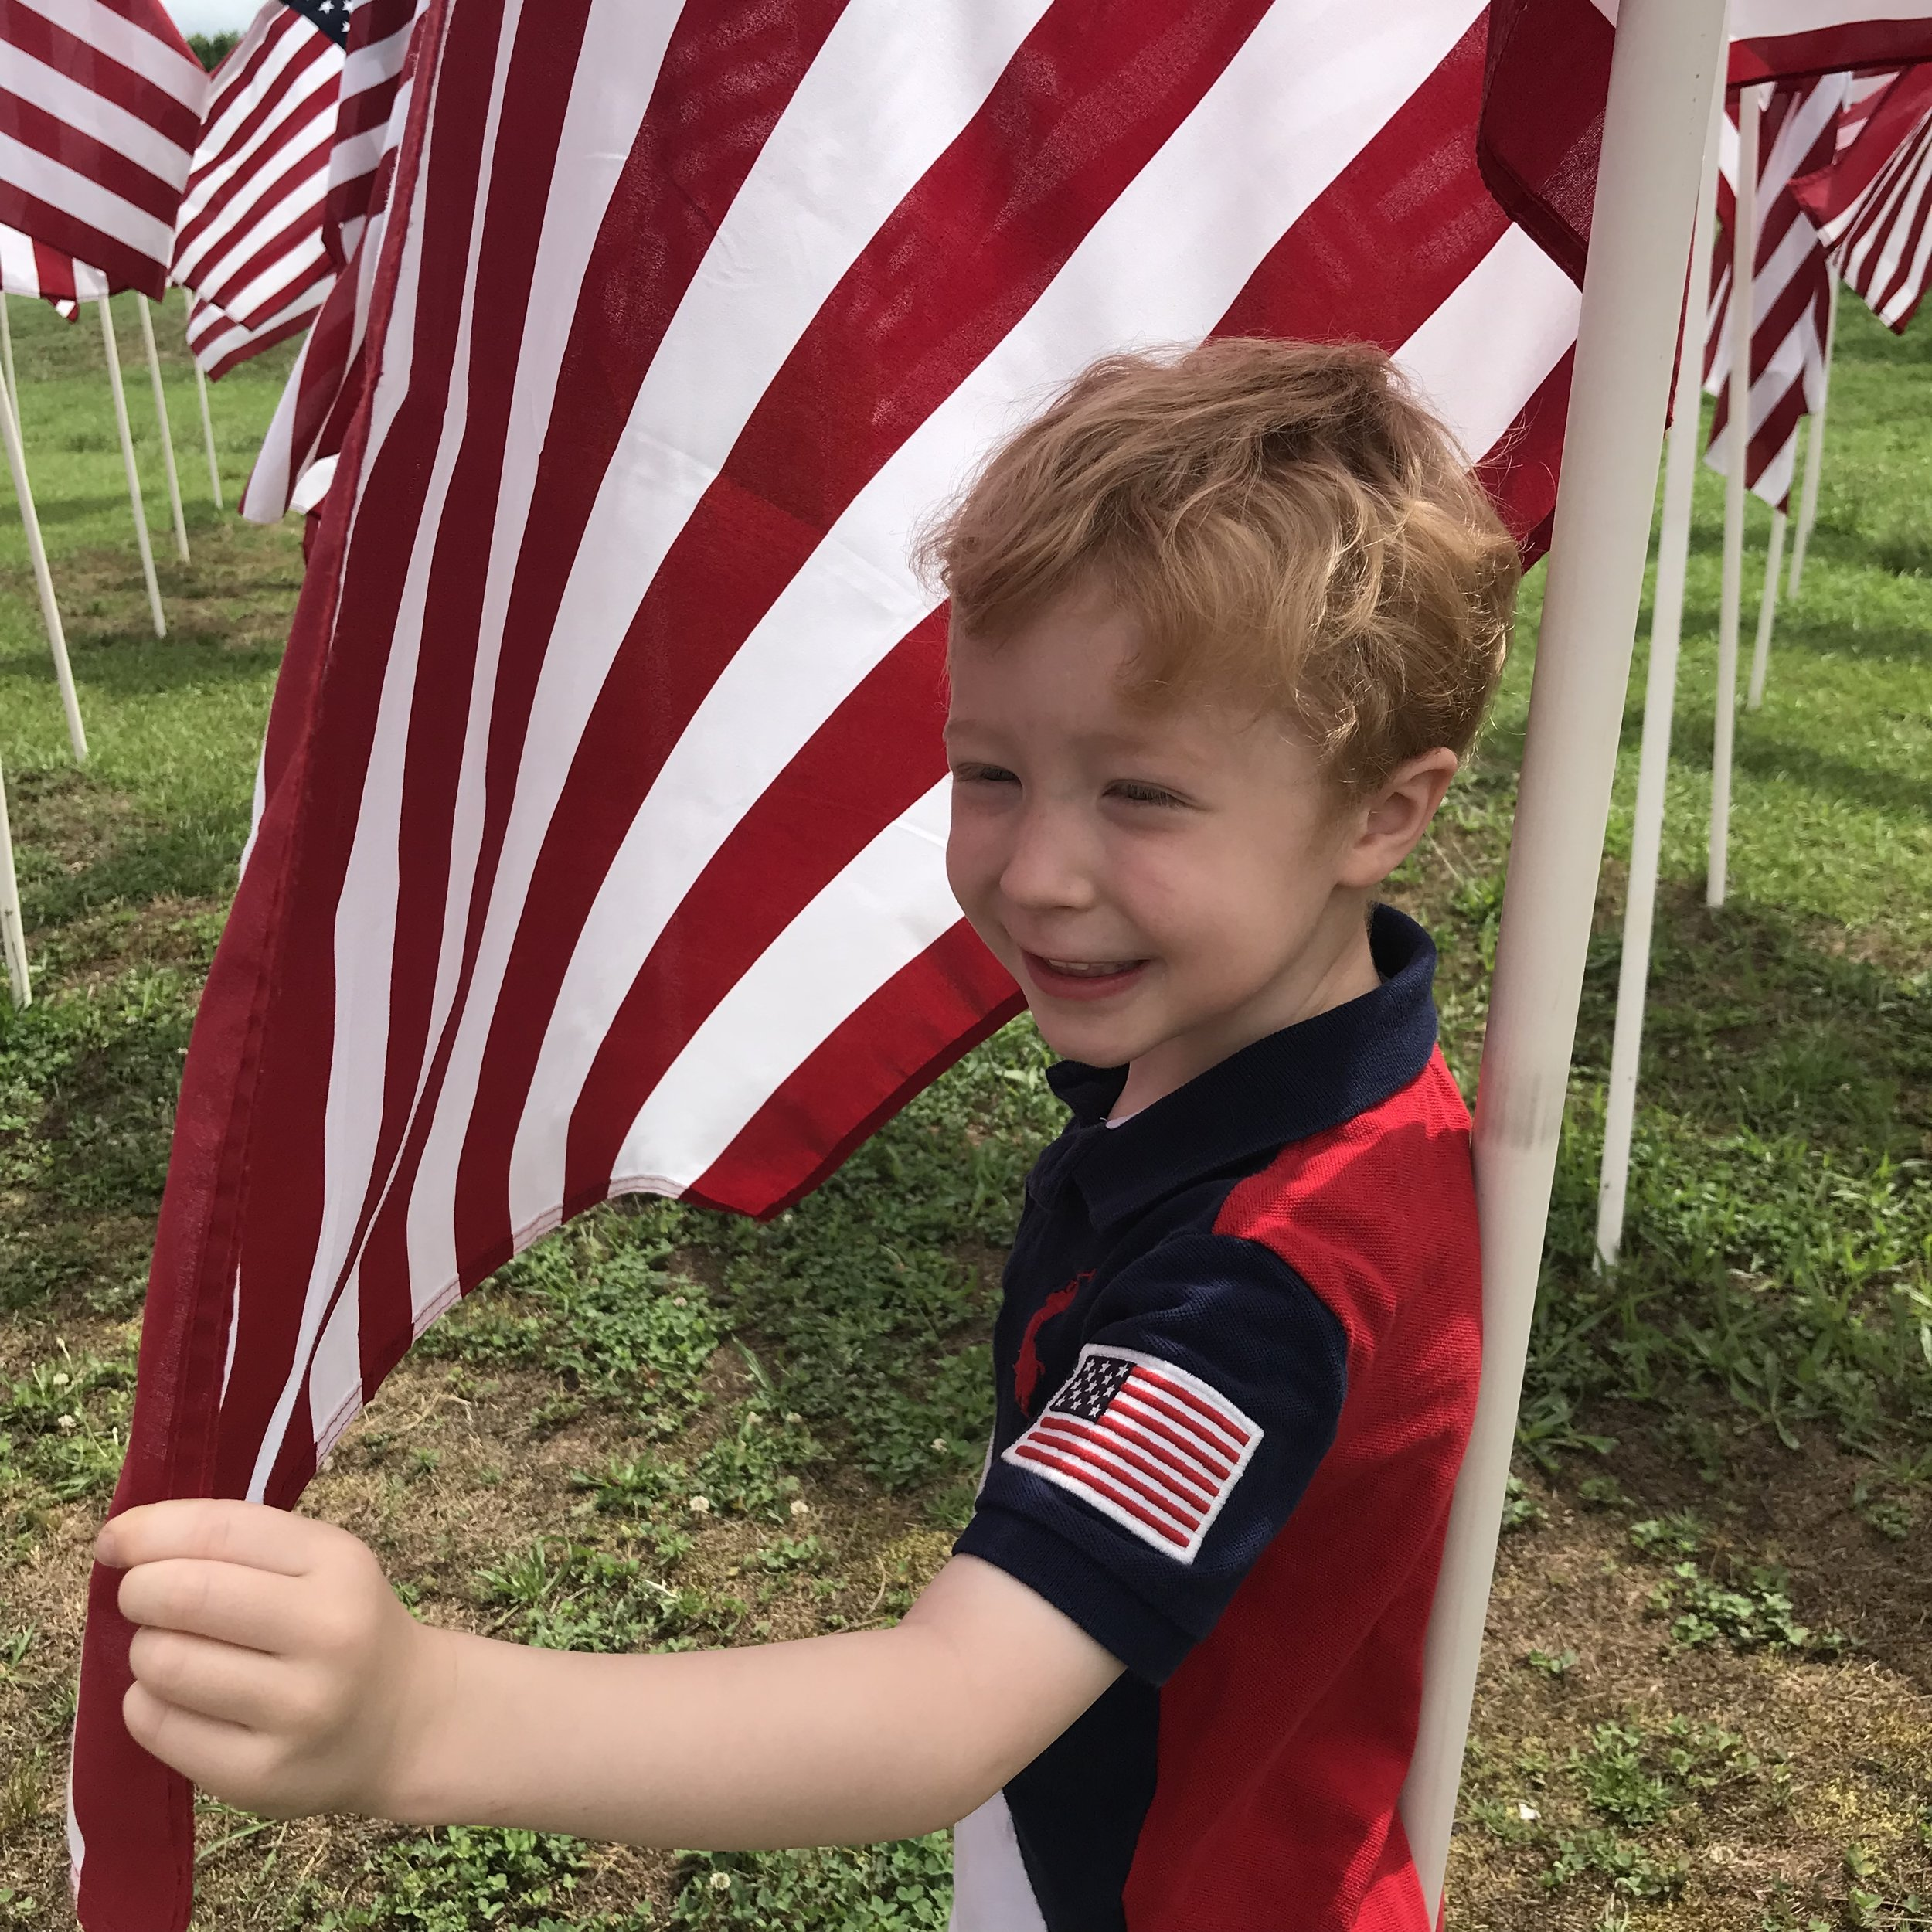 Jana and Christian Donohoe's son, at the Flag Field at the U.S. Army Airborne and Special Operations Museum in Fayetteville